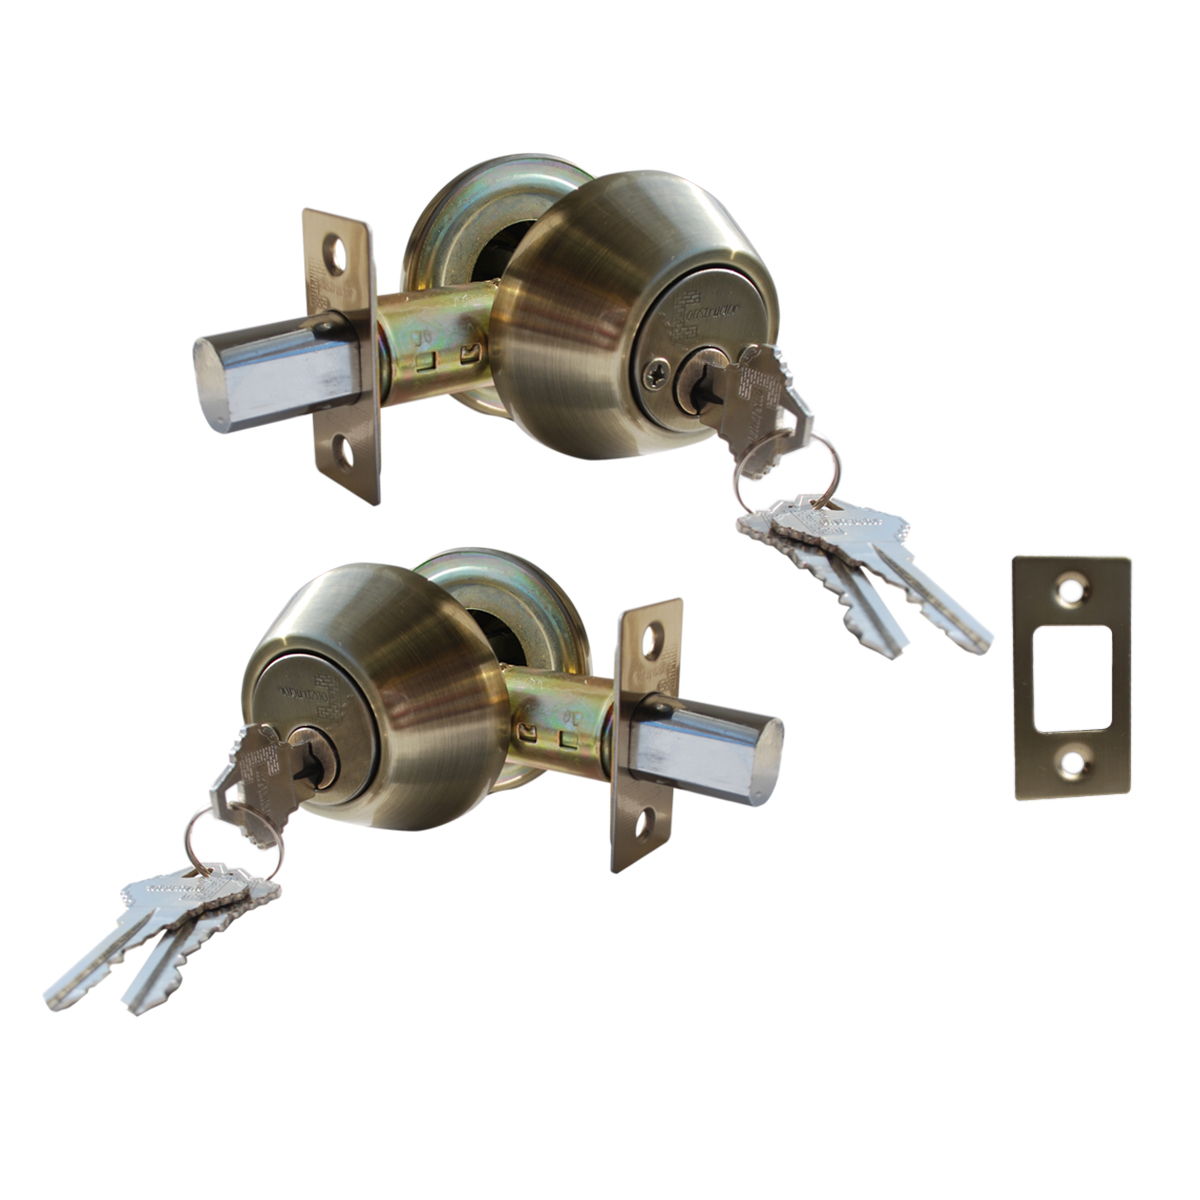 Constructor Deadbolt Door Lock Set with Double Cylinder Antique Bronze Finish